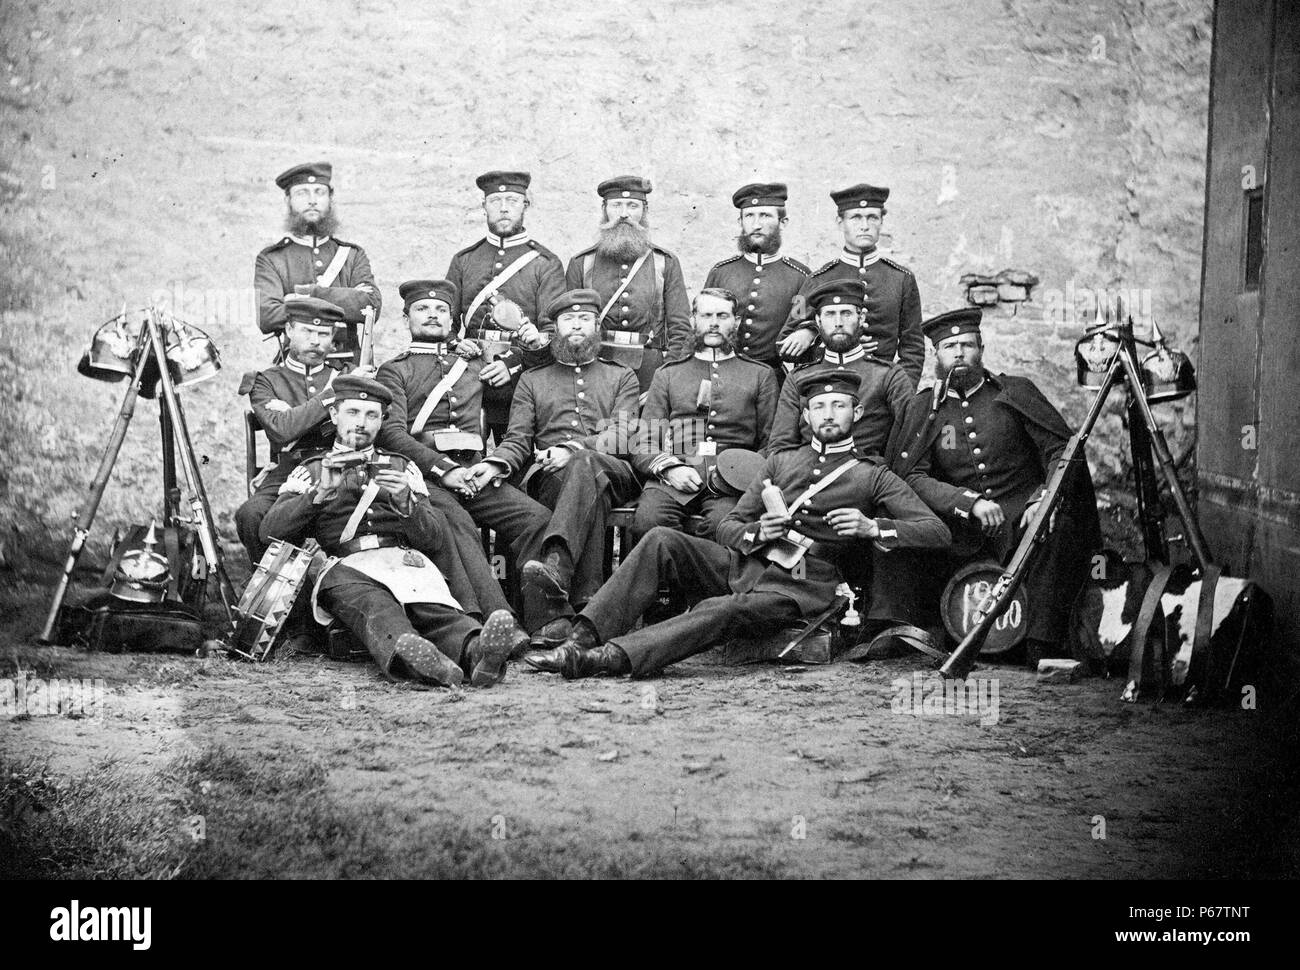 Prussian soldiers photographed during the Austro-Prussian war of 1866. - Stock Image